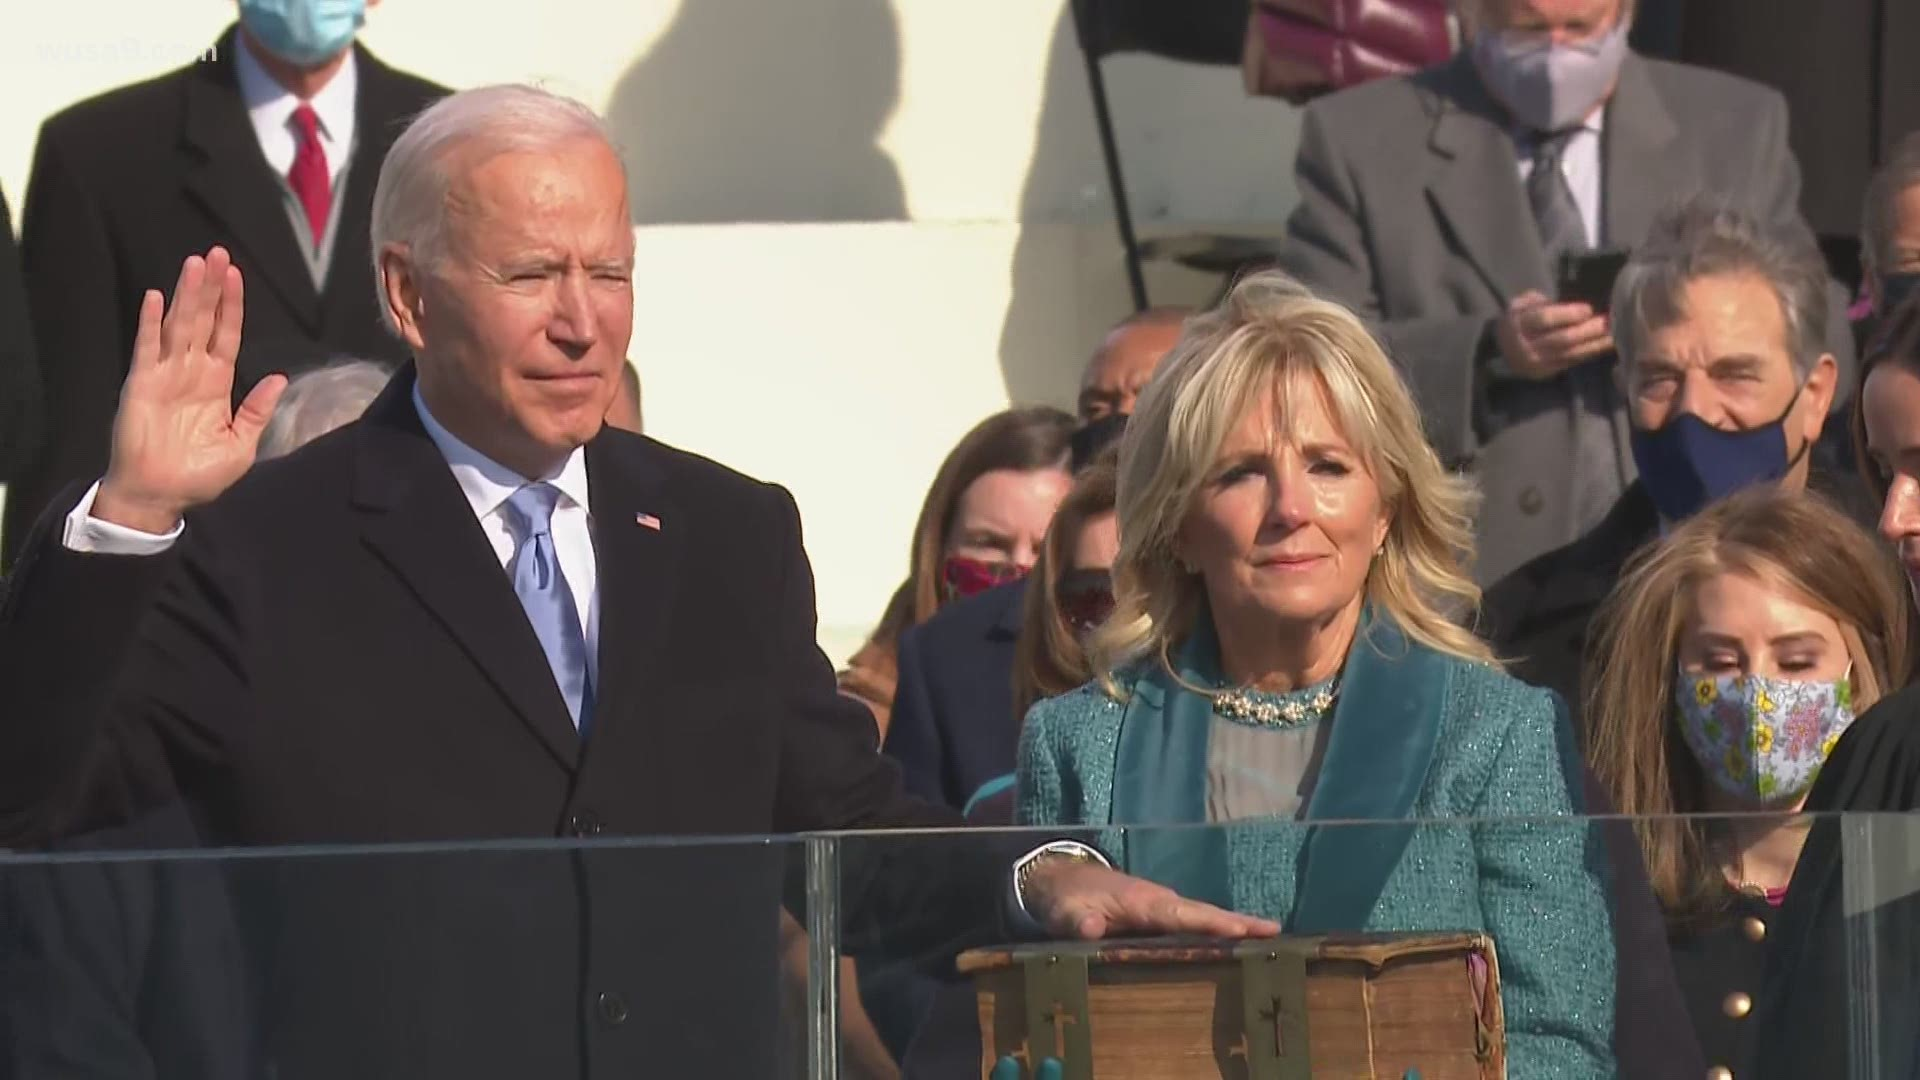 Jimmy Carter age now why he wasn't at inauguration | 10tv.com